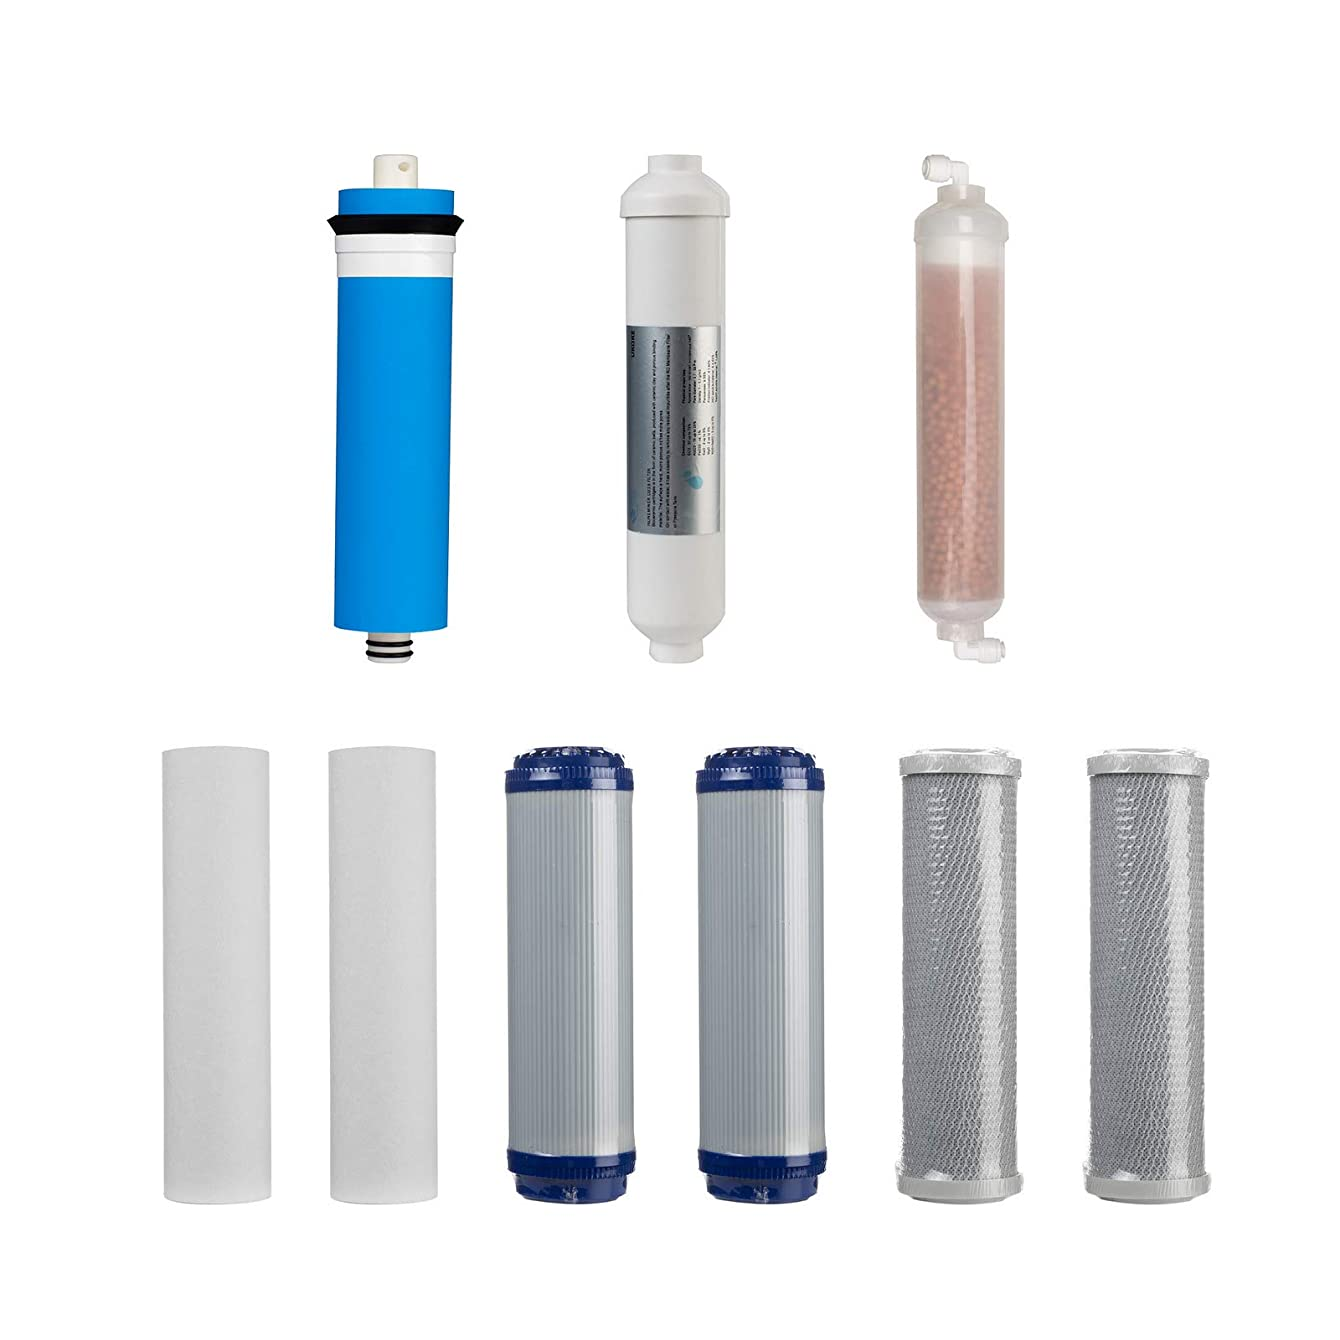 Ukoke 1-year Replacement Filter Set for 6 Stage (9pcs) for UKOKE RO75G & RO75GP Reverse Osmosis Water Filtration System, 6~12 months